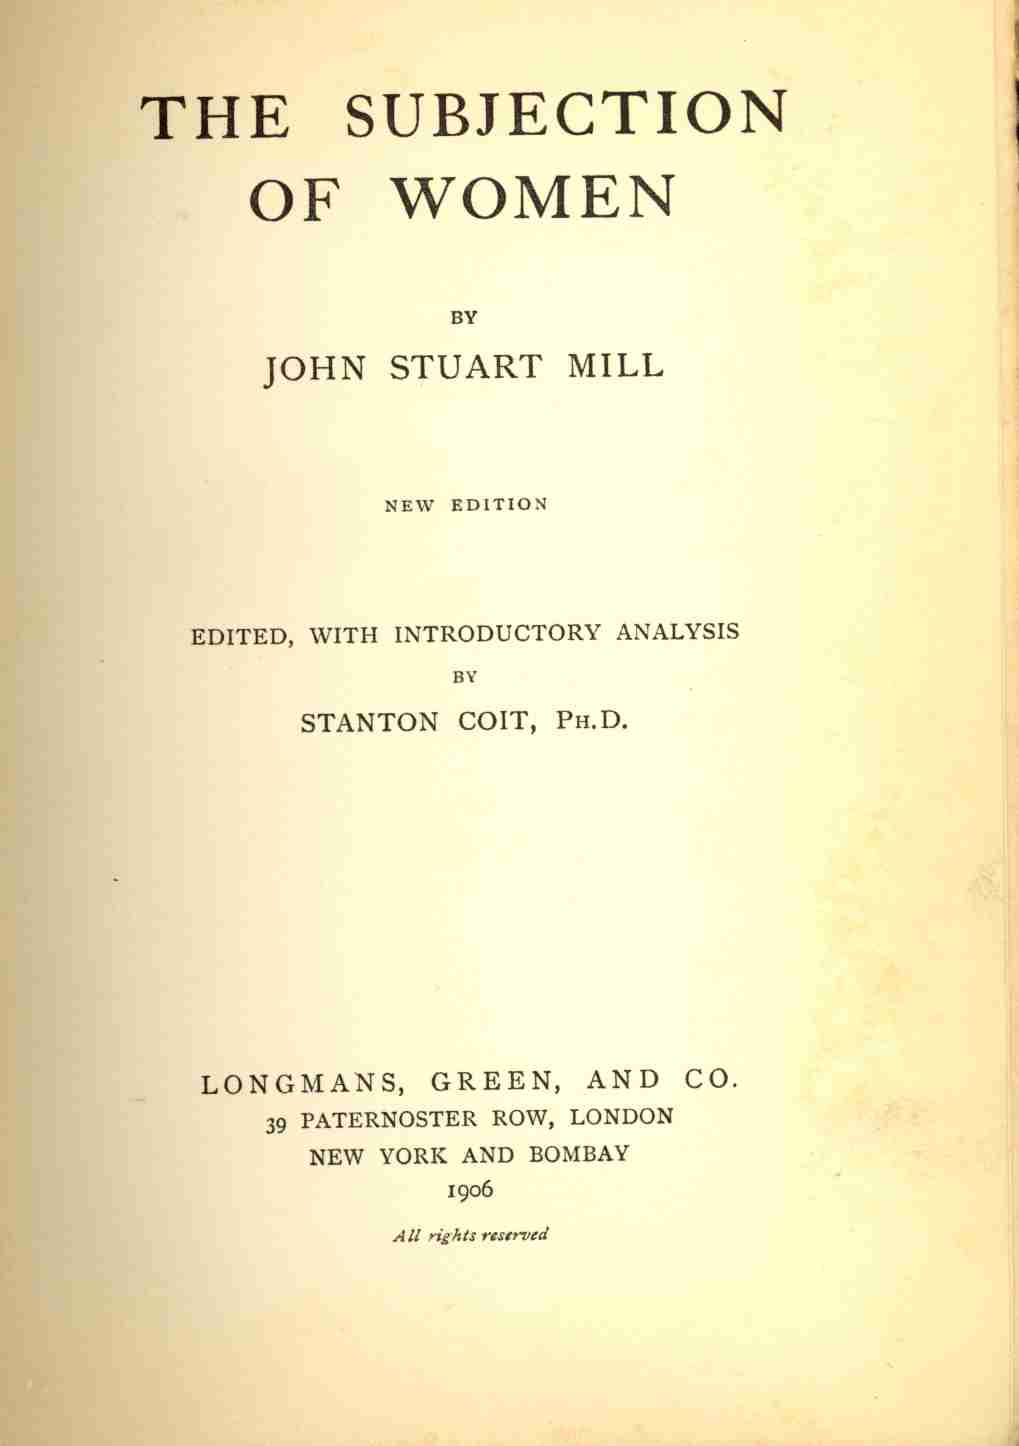 j s mills subjection of women essay